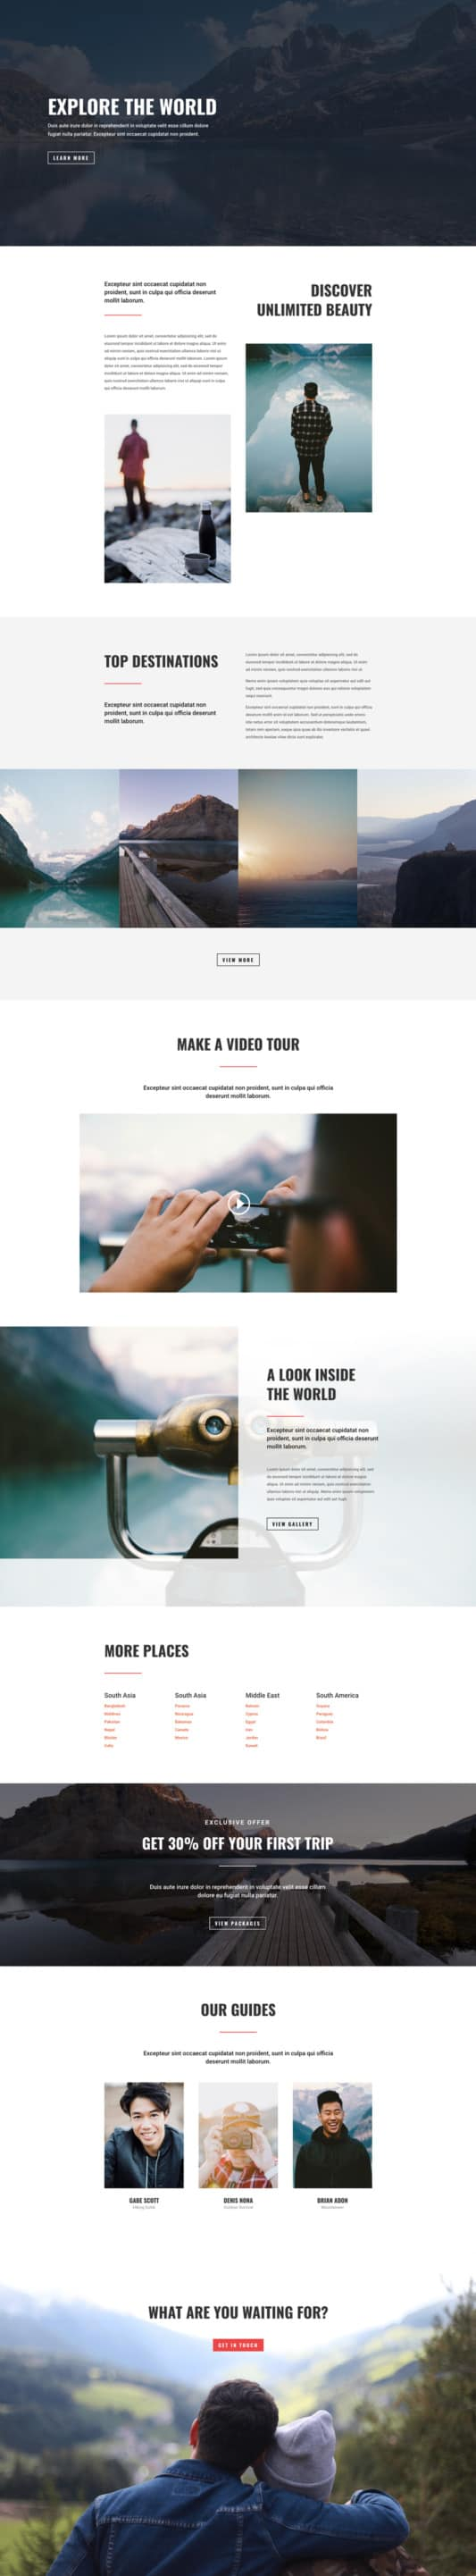 Travel Agency Web Design 5